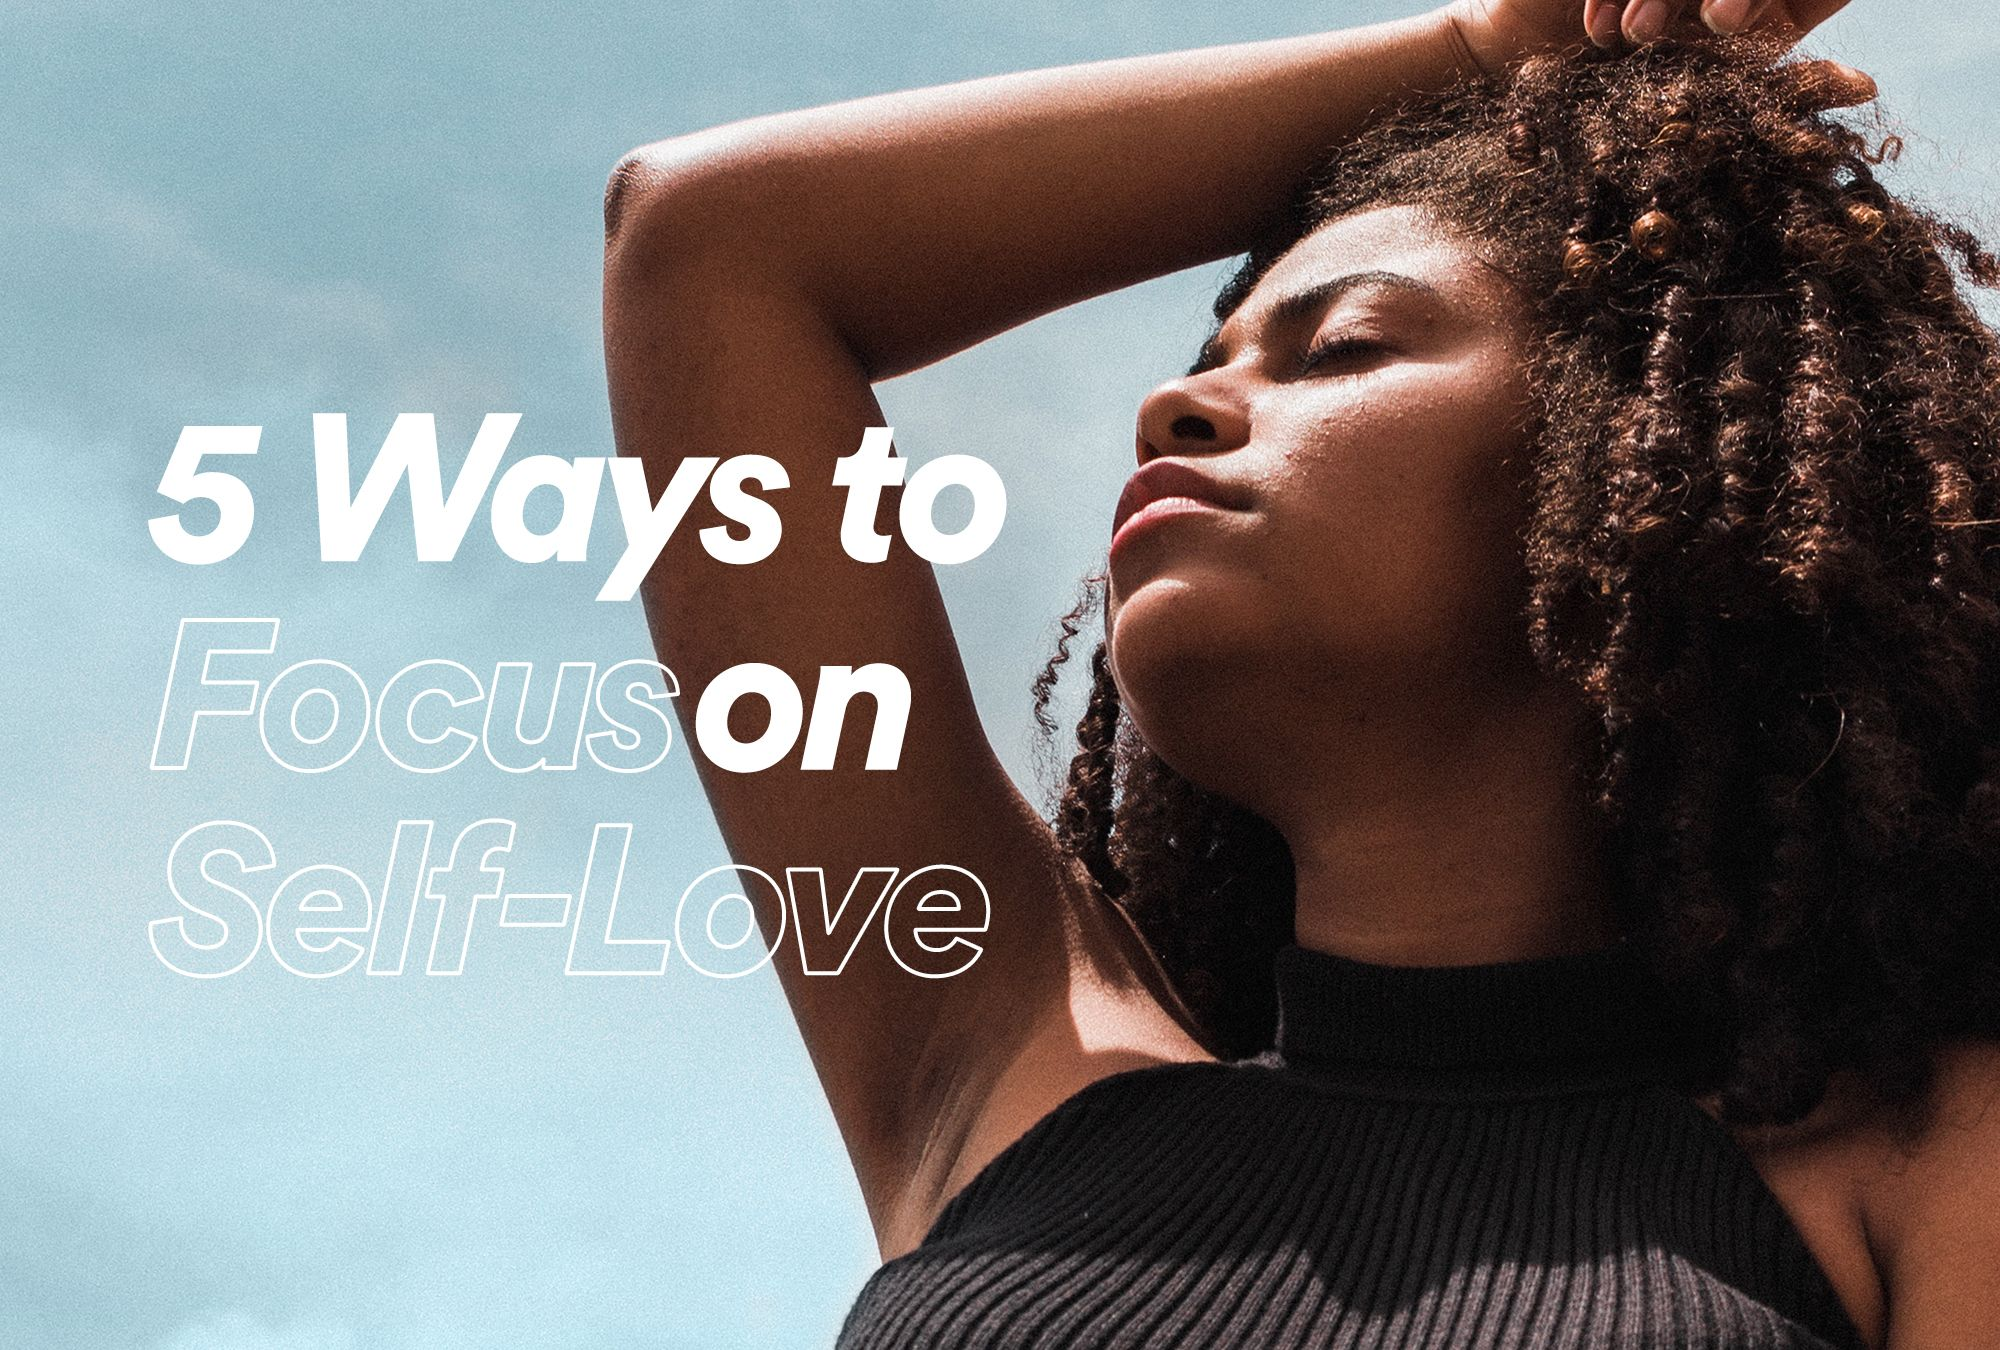 5 Ways to Focus on Self-Love